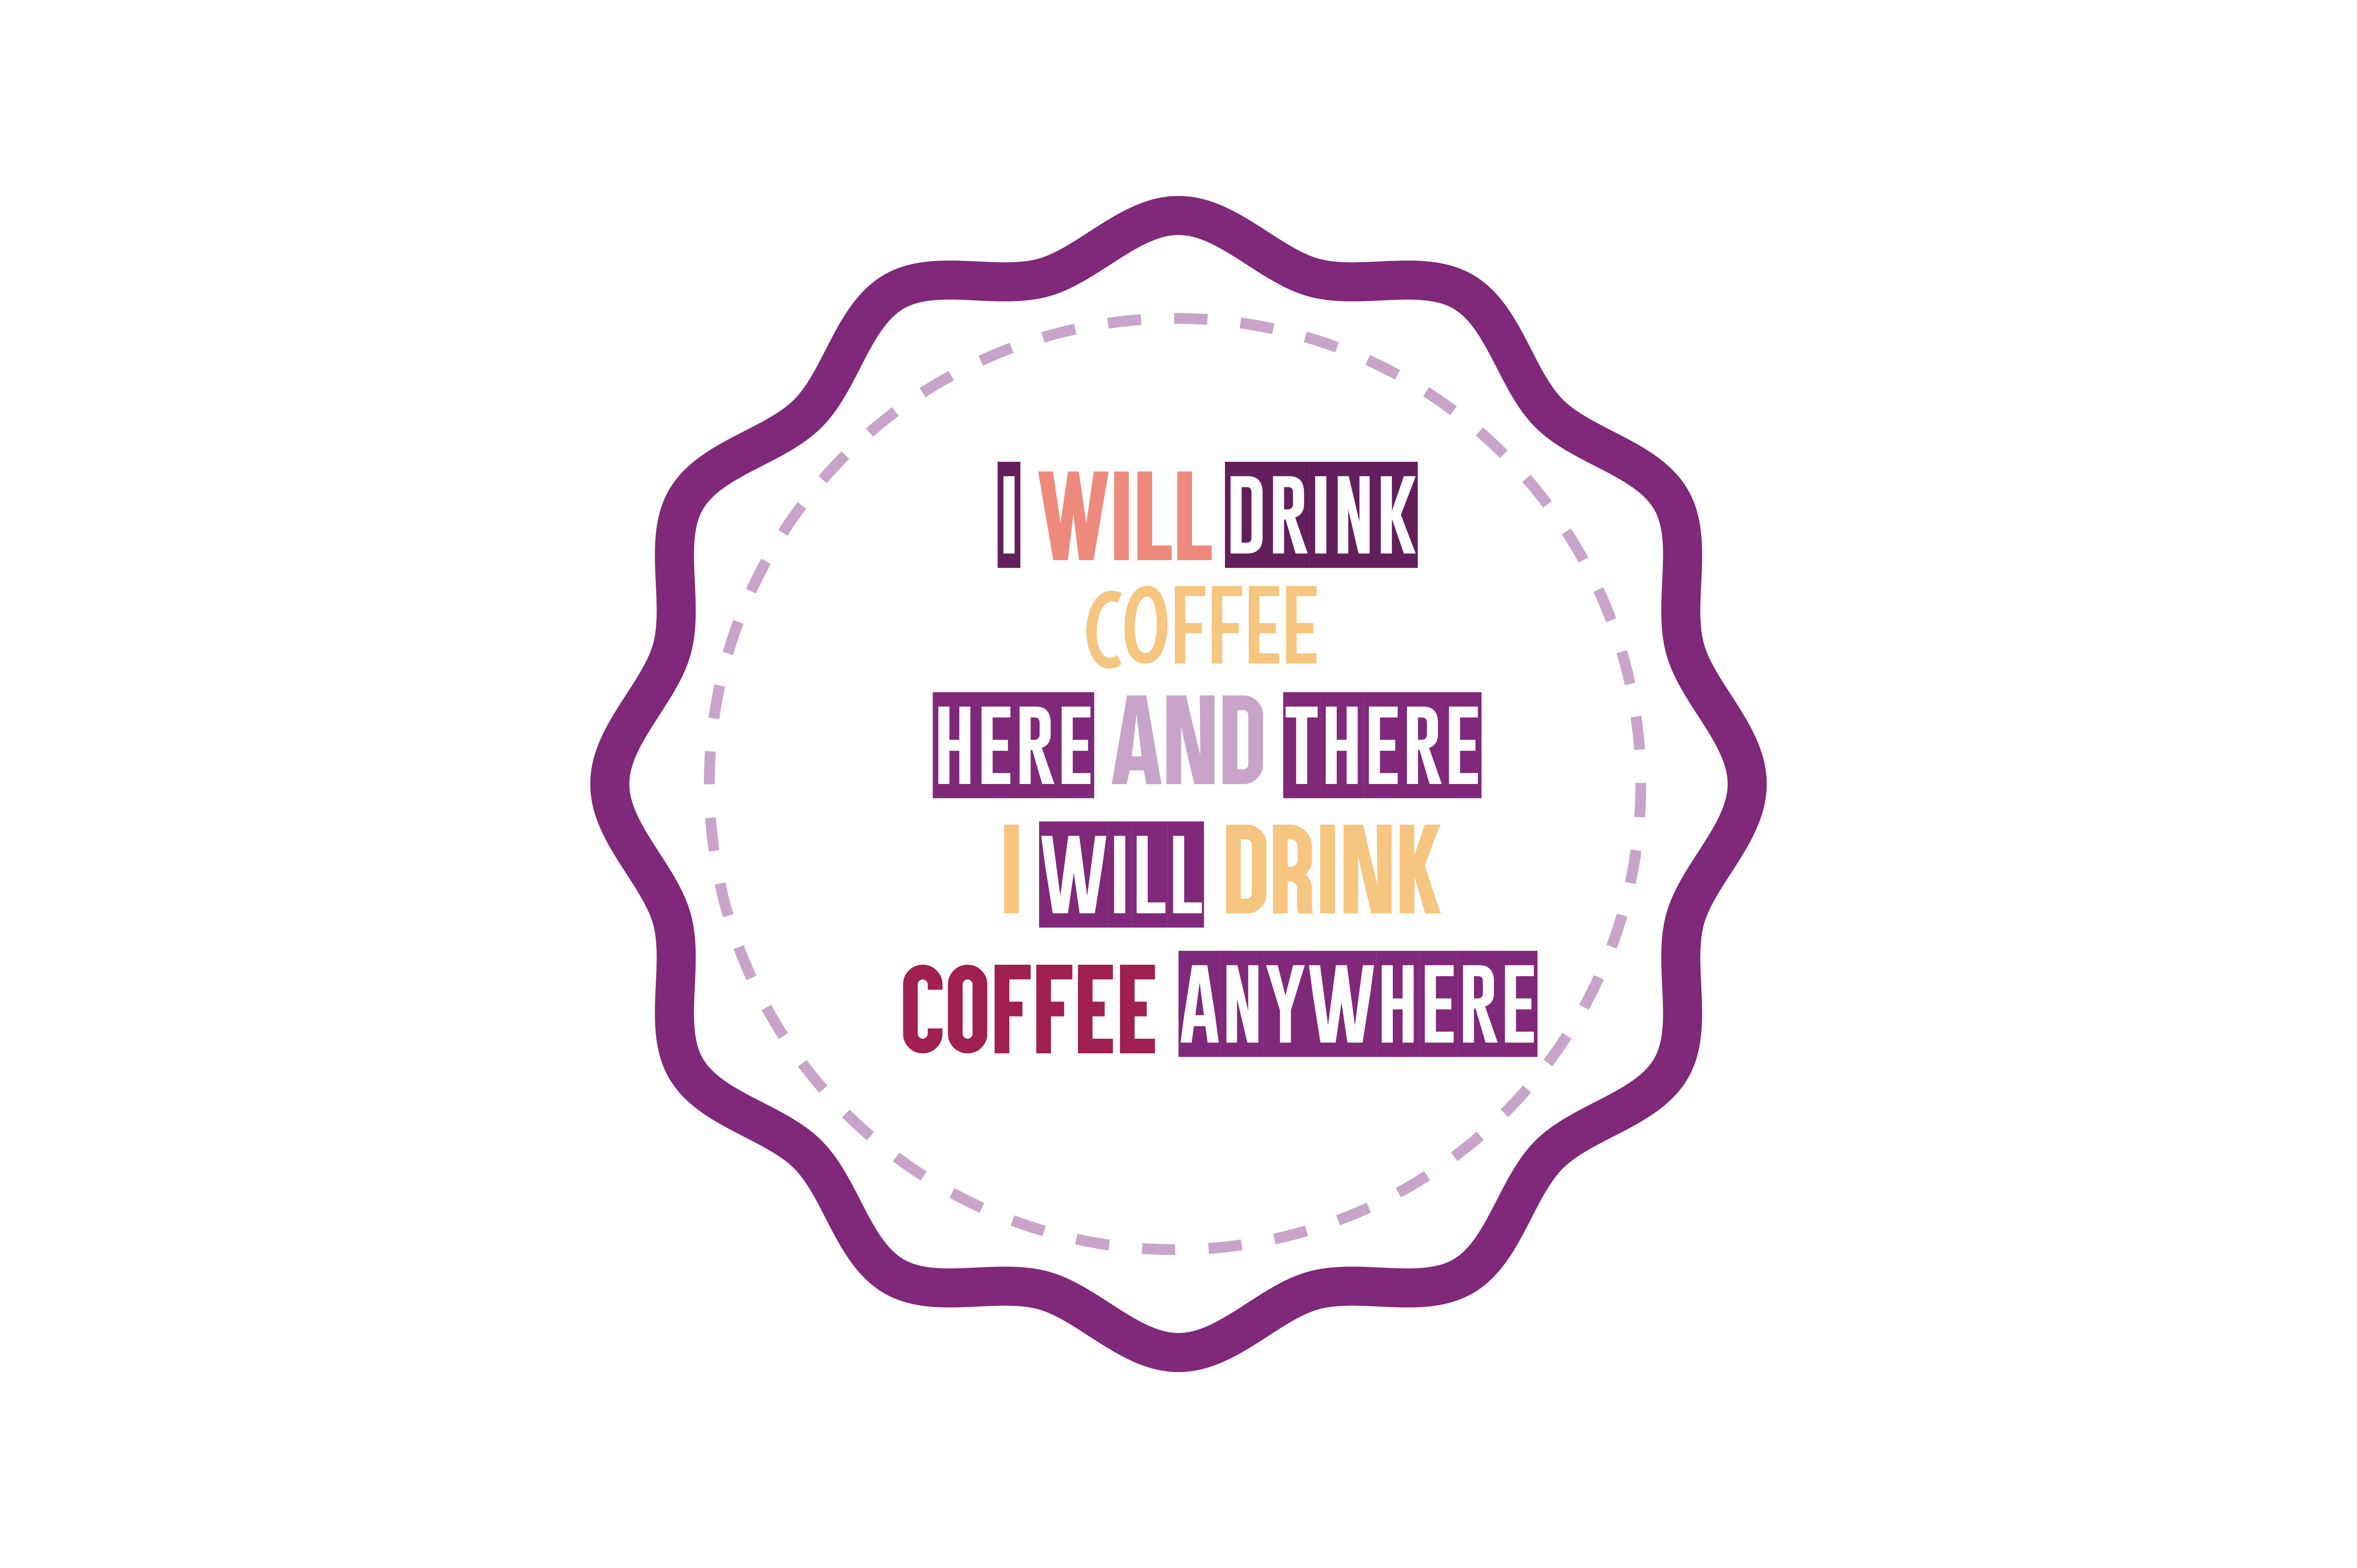 Download Free I Wiil Drink Coffe Here And There I Willl Drink Coffee Everywhere for Cricut Explore, Silhouette and other cutting machines.